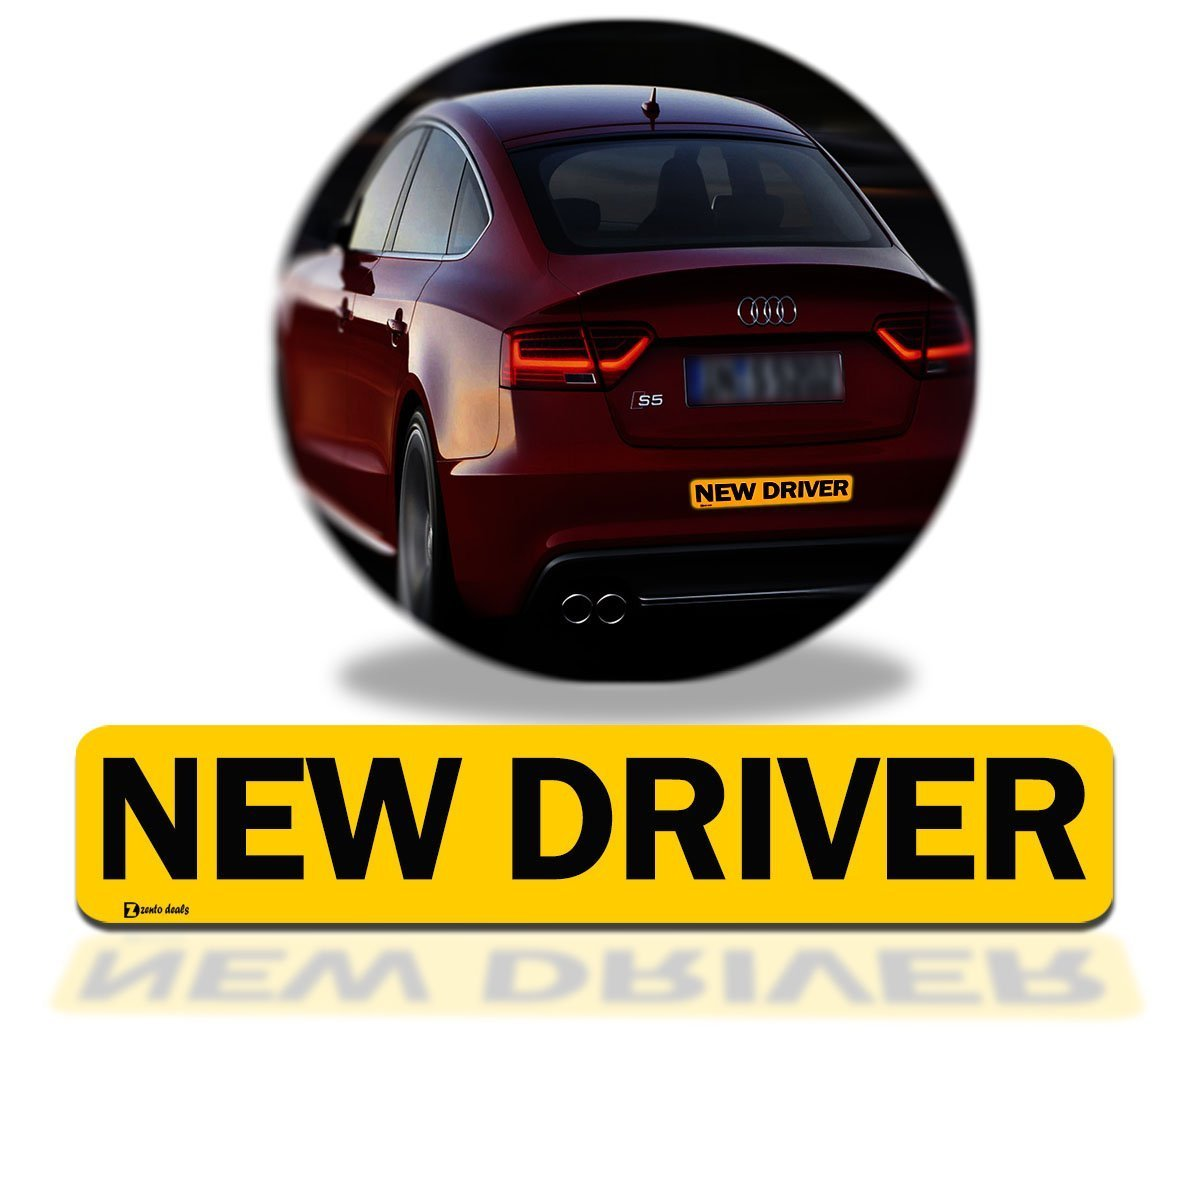 """Zento Deals """"New Driver"""" Car Magnet Black Block Lettering on Yellow Background 3"""" X 12"""" 1 Pack"""